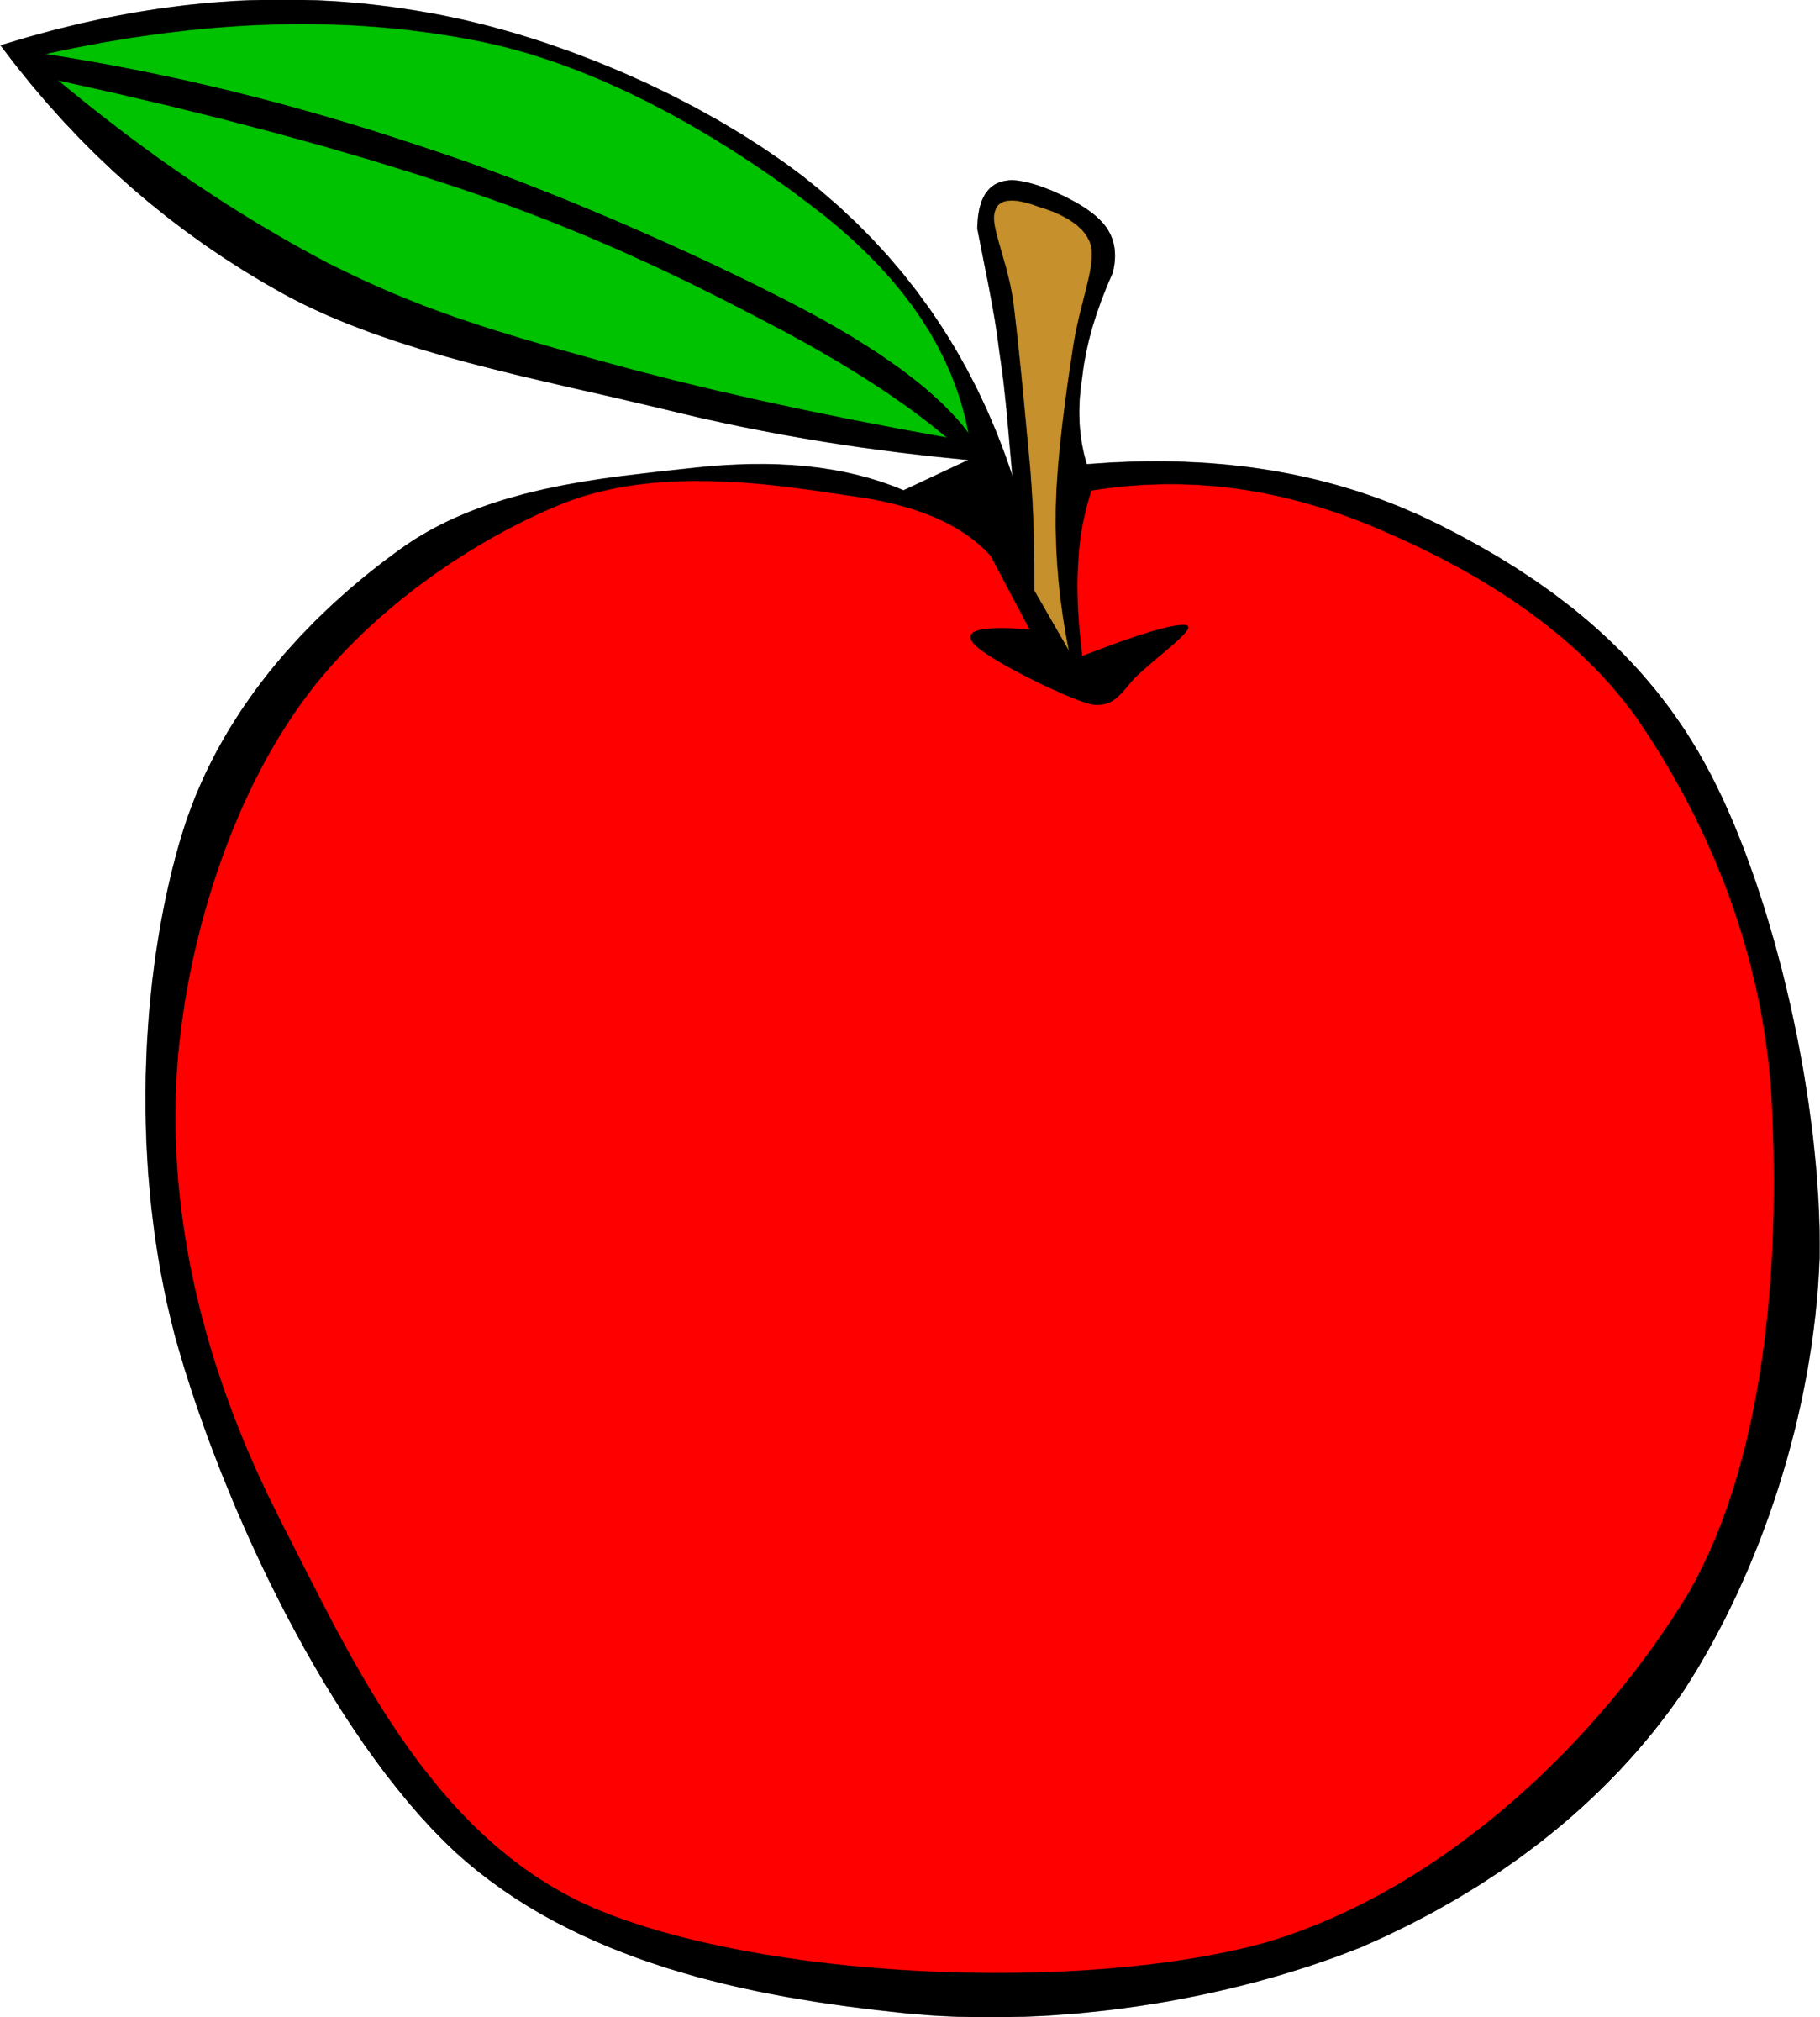 School apple png. Simple fruit icons free